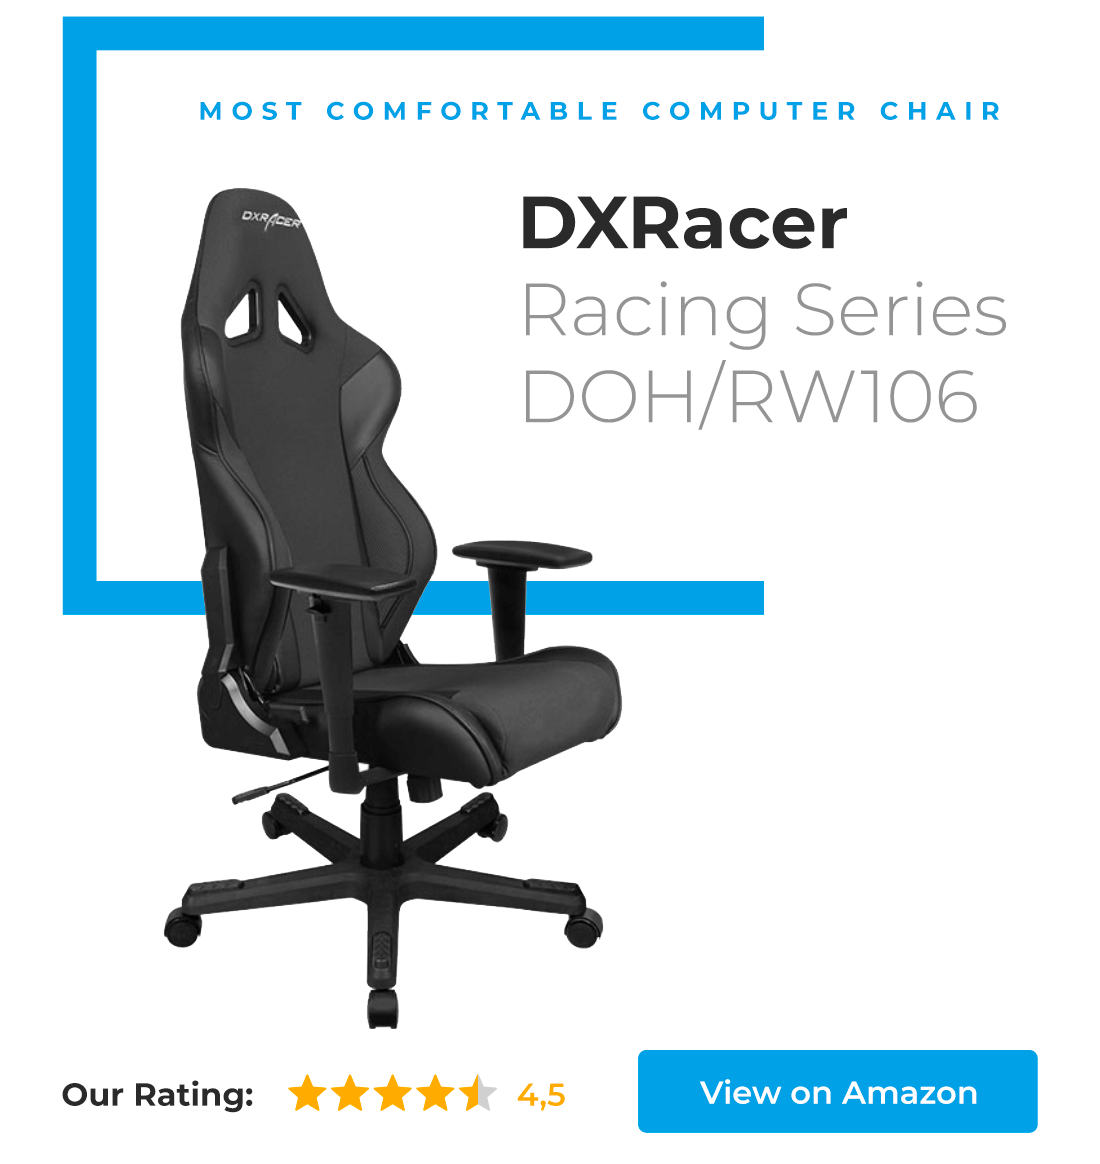 Most comfortable computer chair award is going to DXRacer Racing Series - great chair for gamers.